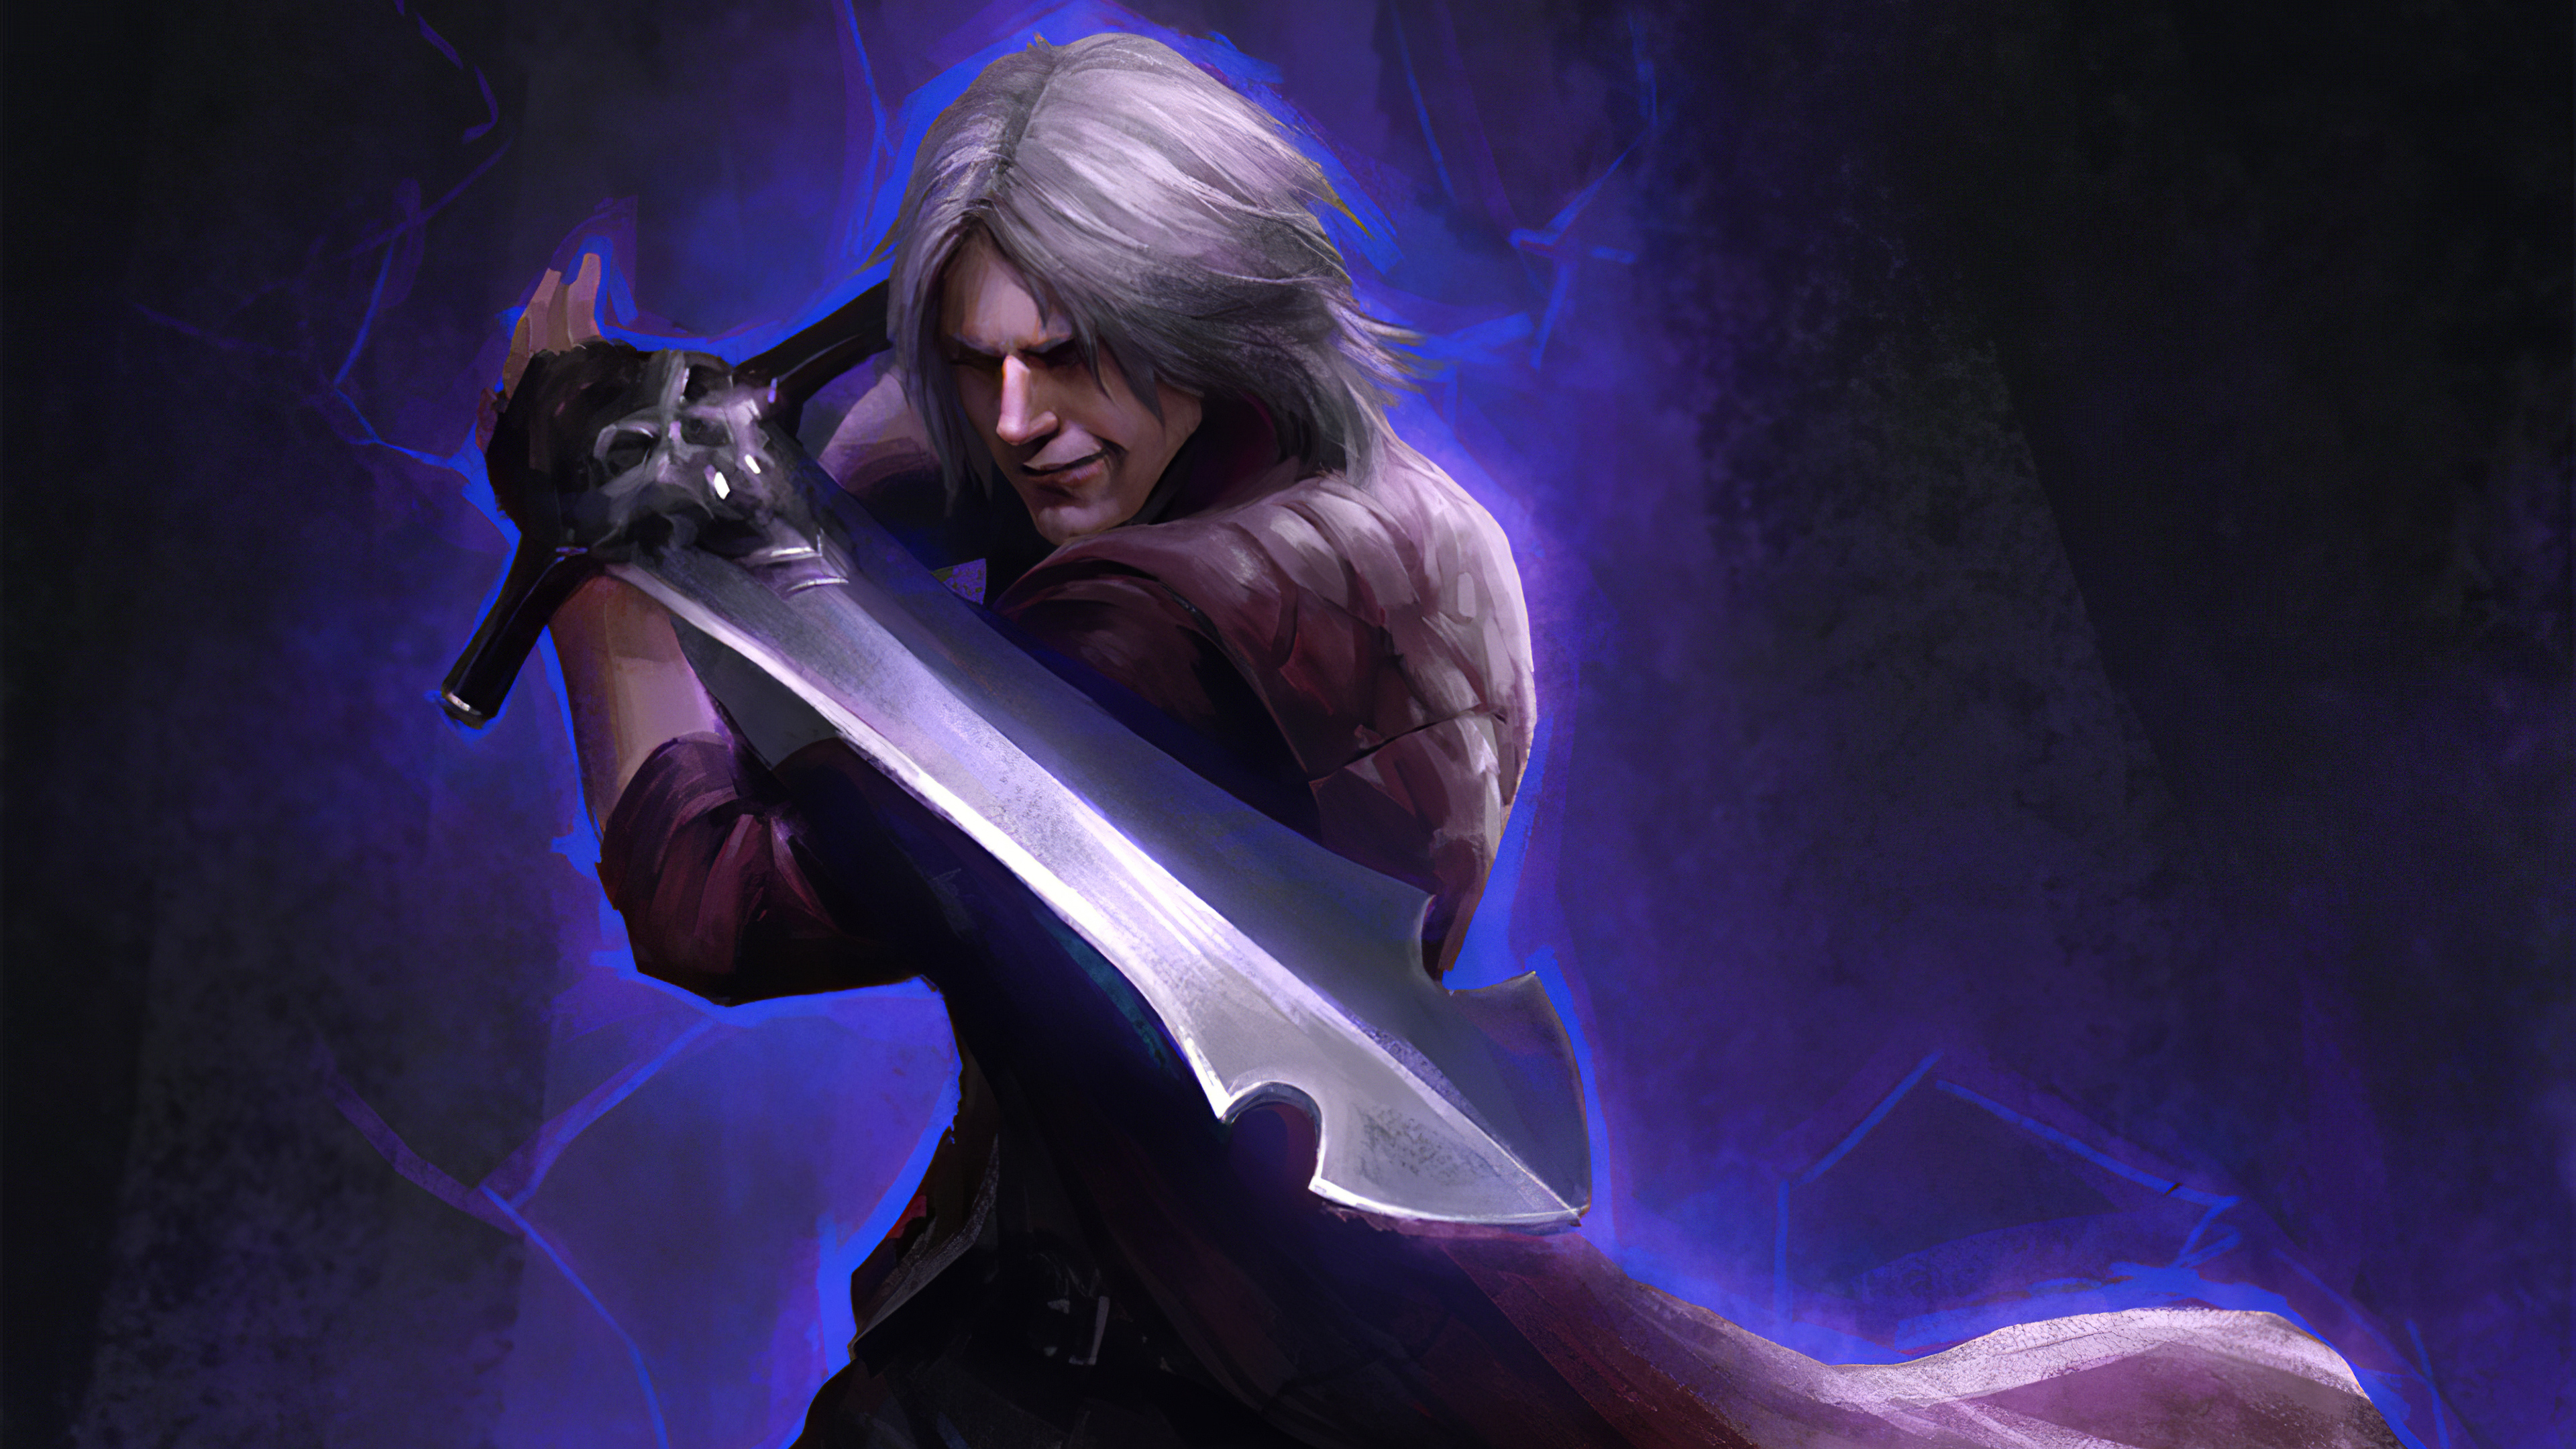 Dante Devil May Cry 5 4k Hd Games 4k Wallpapers Images